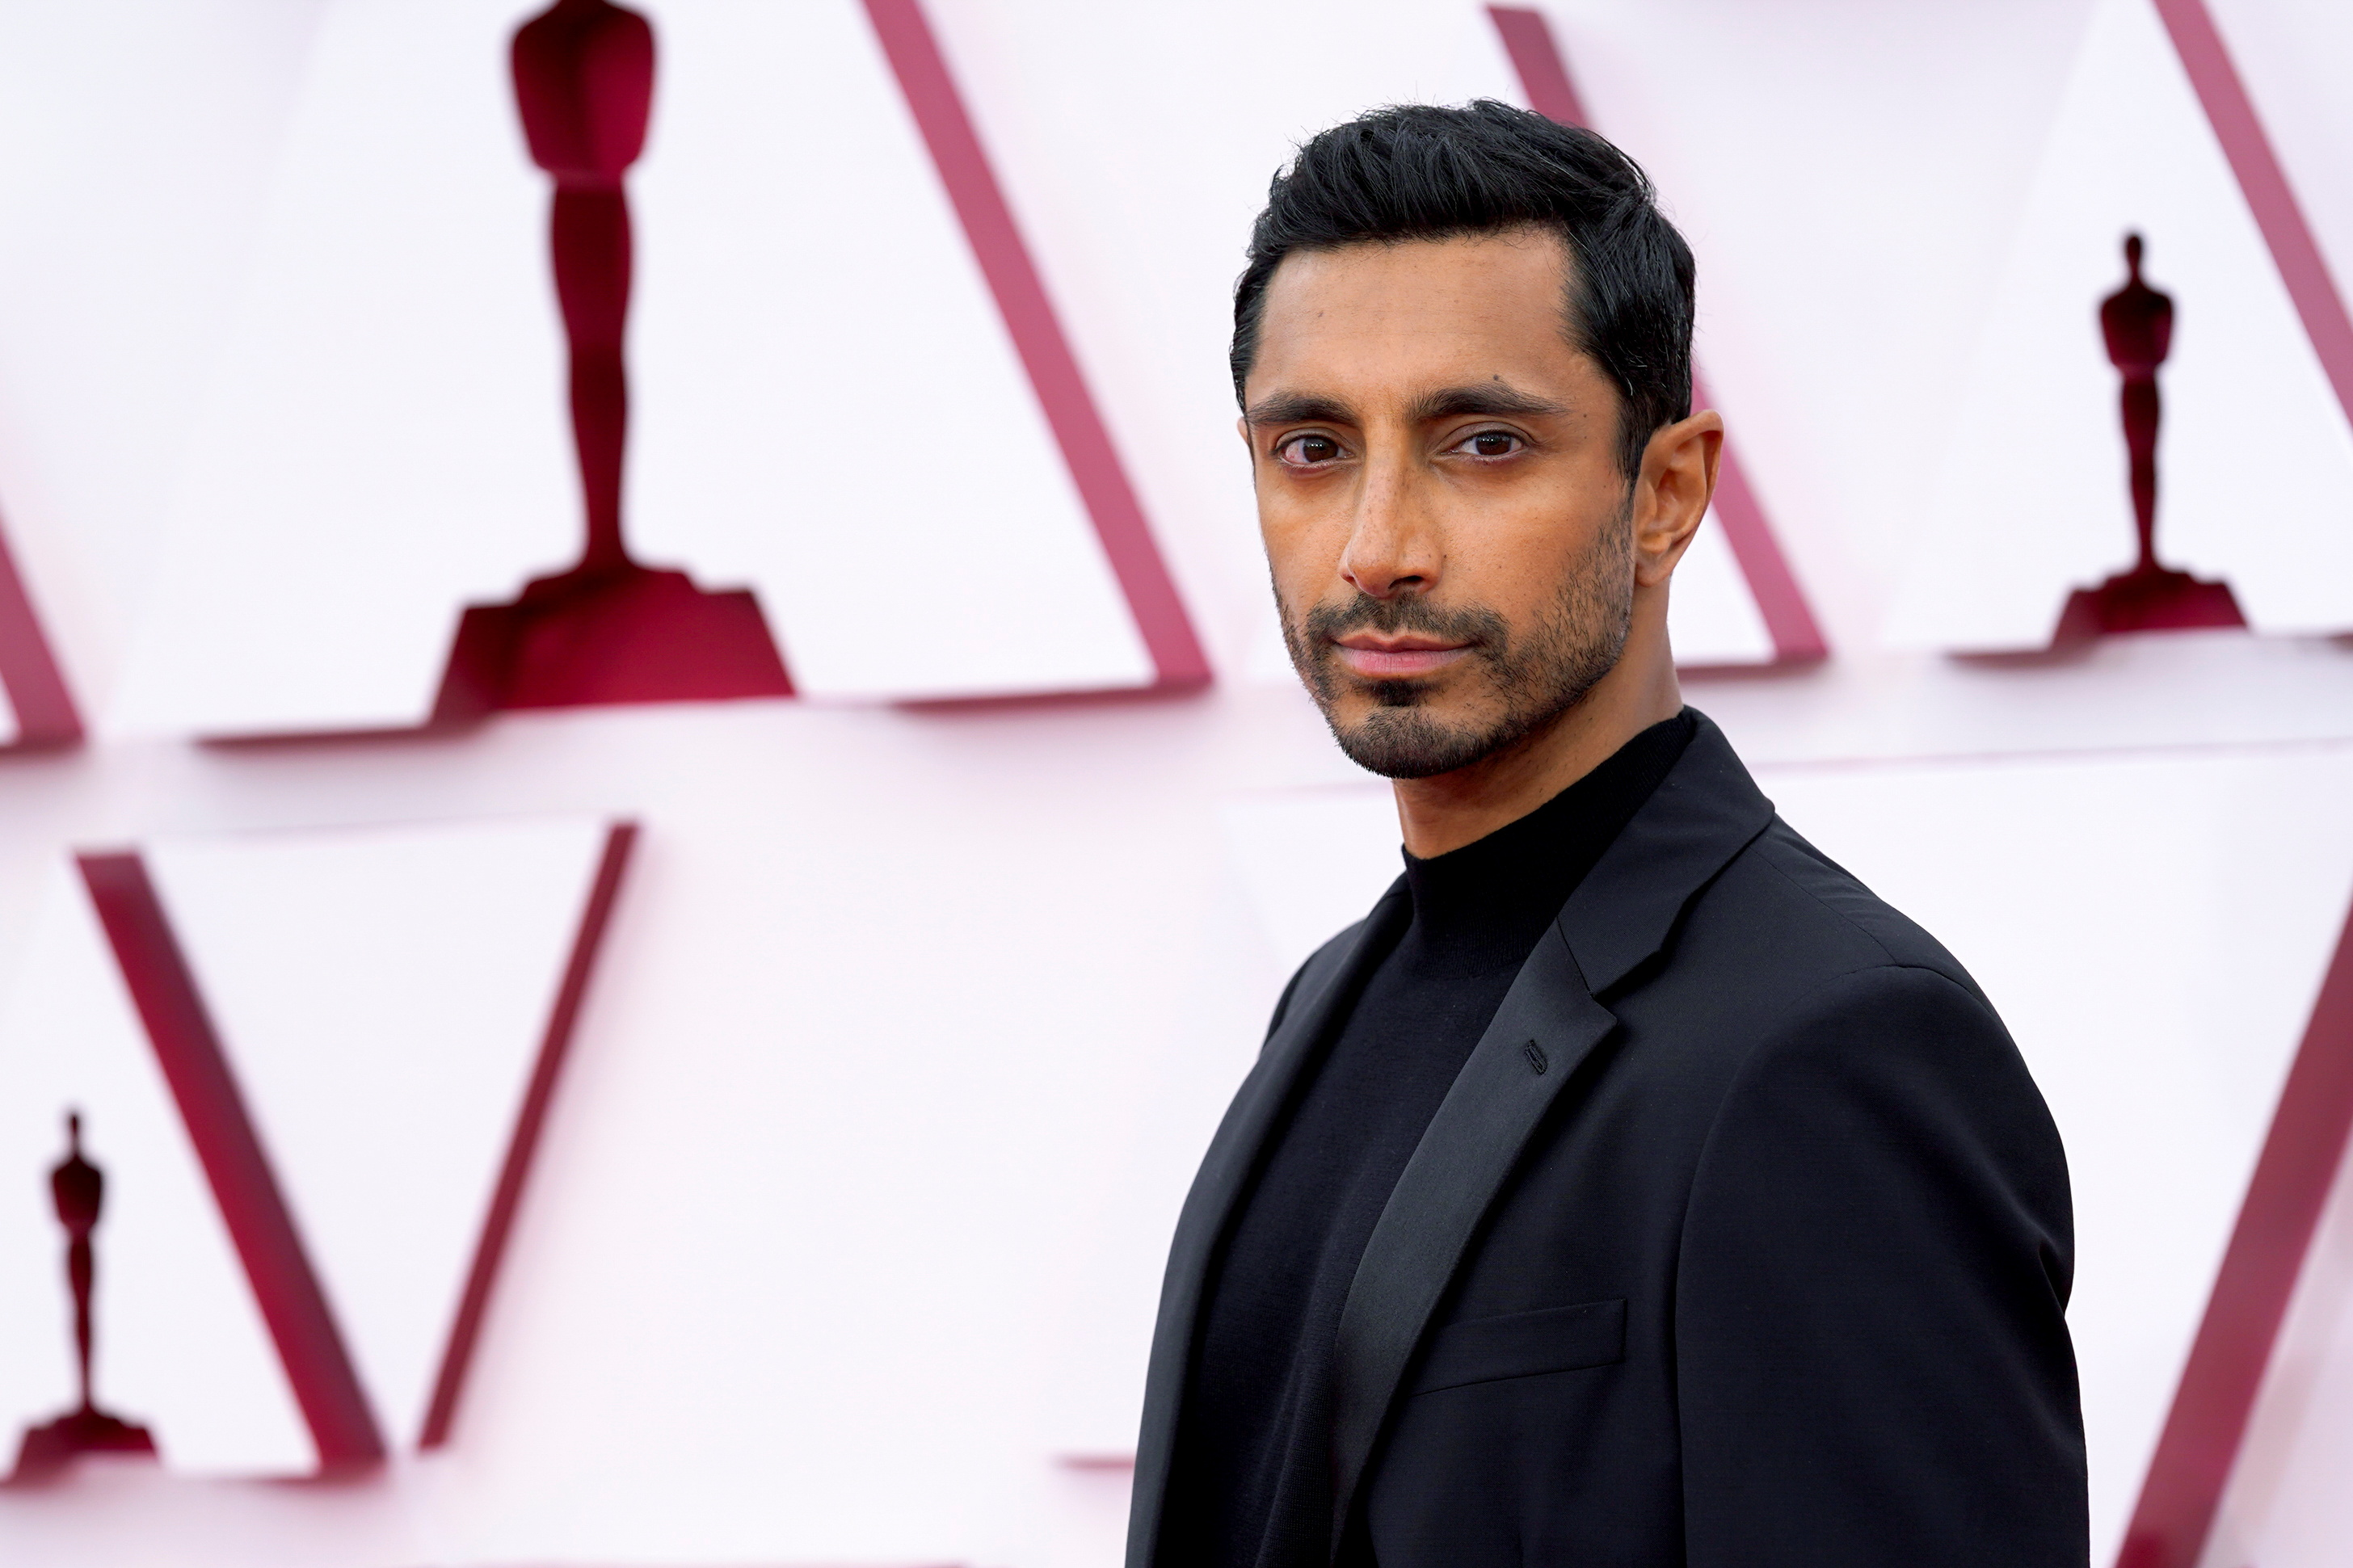 Riz Ahmed arrives to the Oscars red carpet for the 93rd Academy Awards in Los Angeles, California, U.S., April 25, 2021. Chris Pizzello/Pool via REUTERS